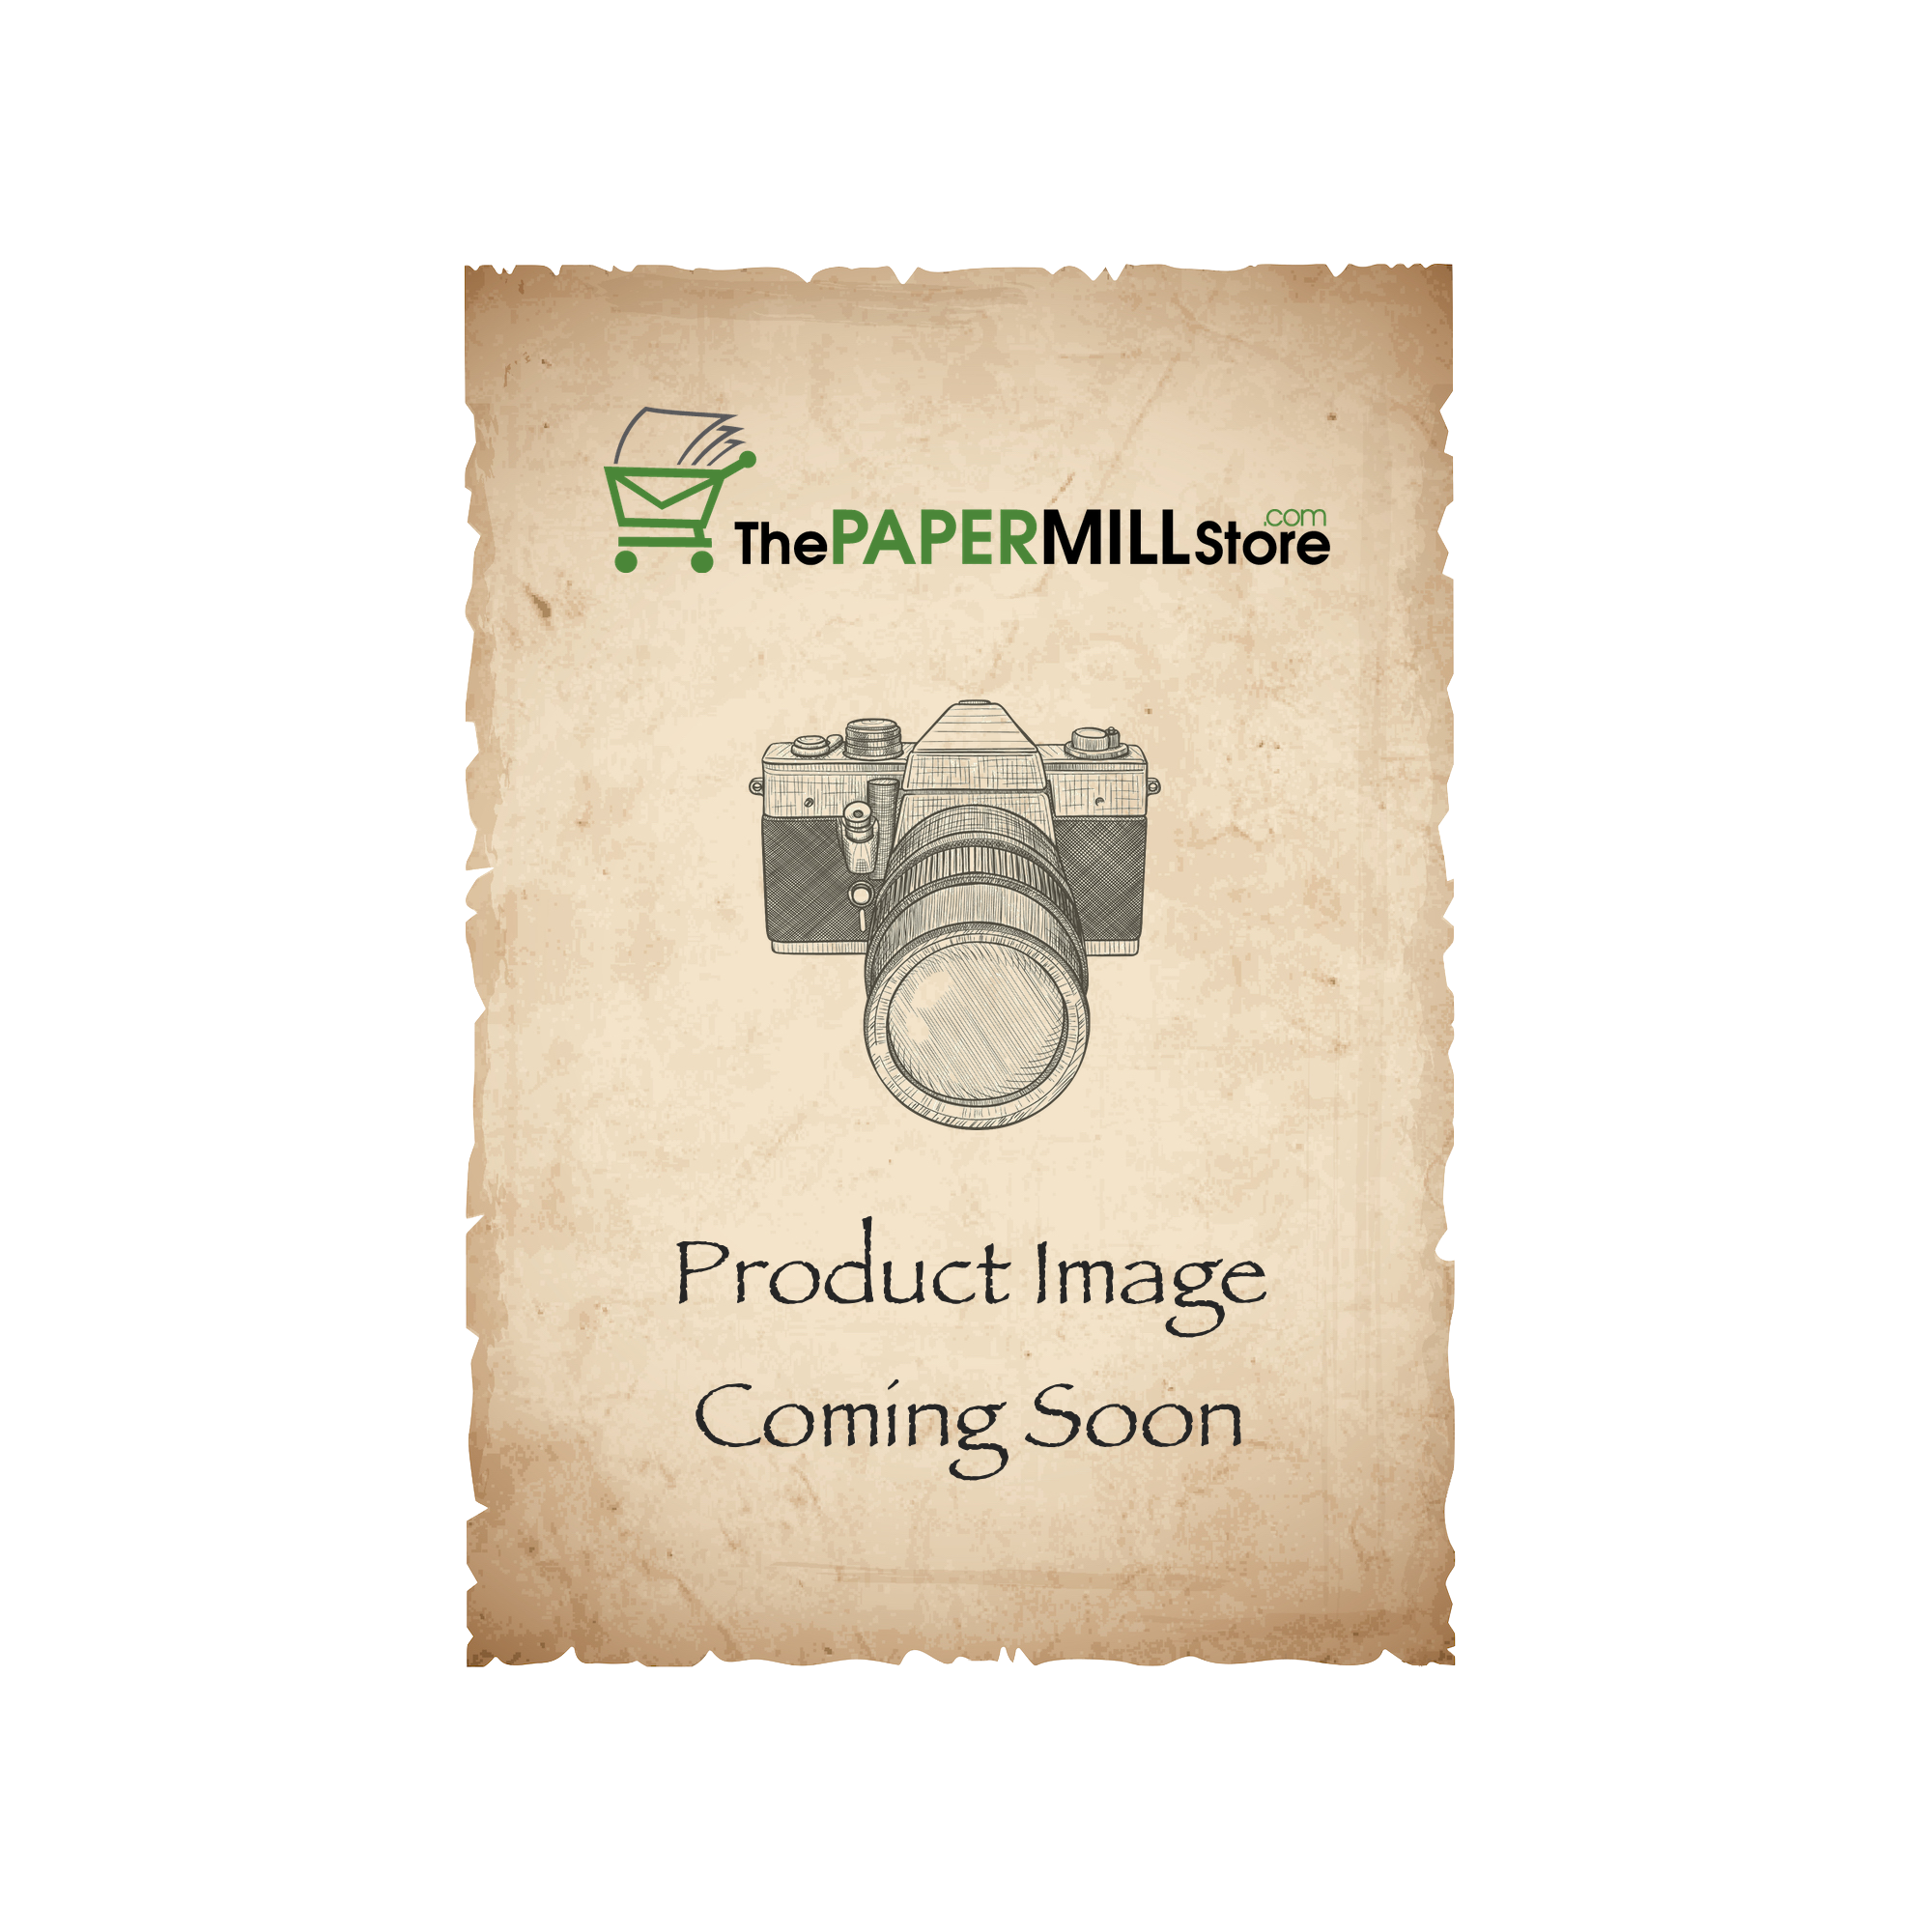 Buy ESSE Pearlized White Card Stock - 19 x 13 in 105 lb Cover Smooth Digital C/2S  30% Recycled 250 per Package at The Paper Mill Store .com